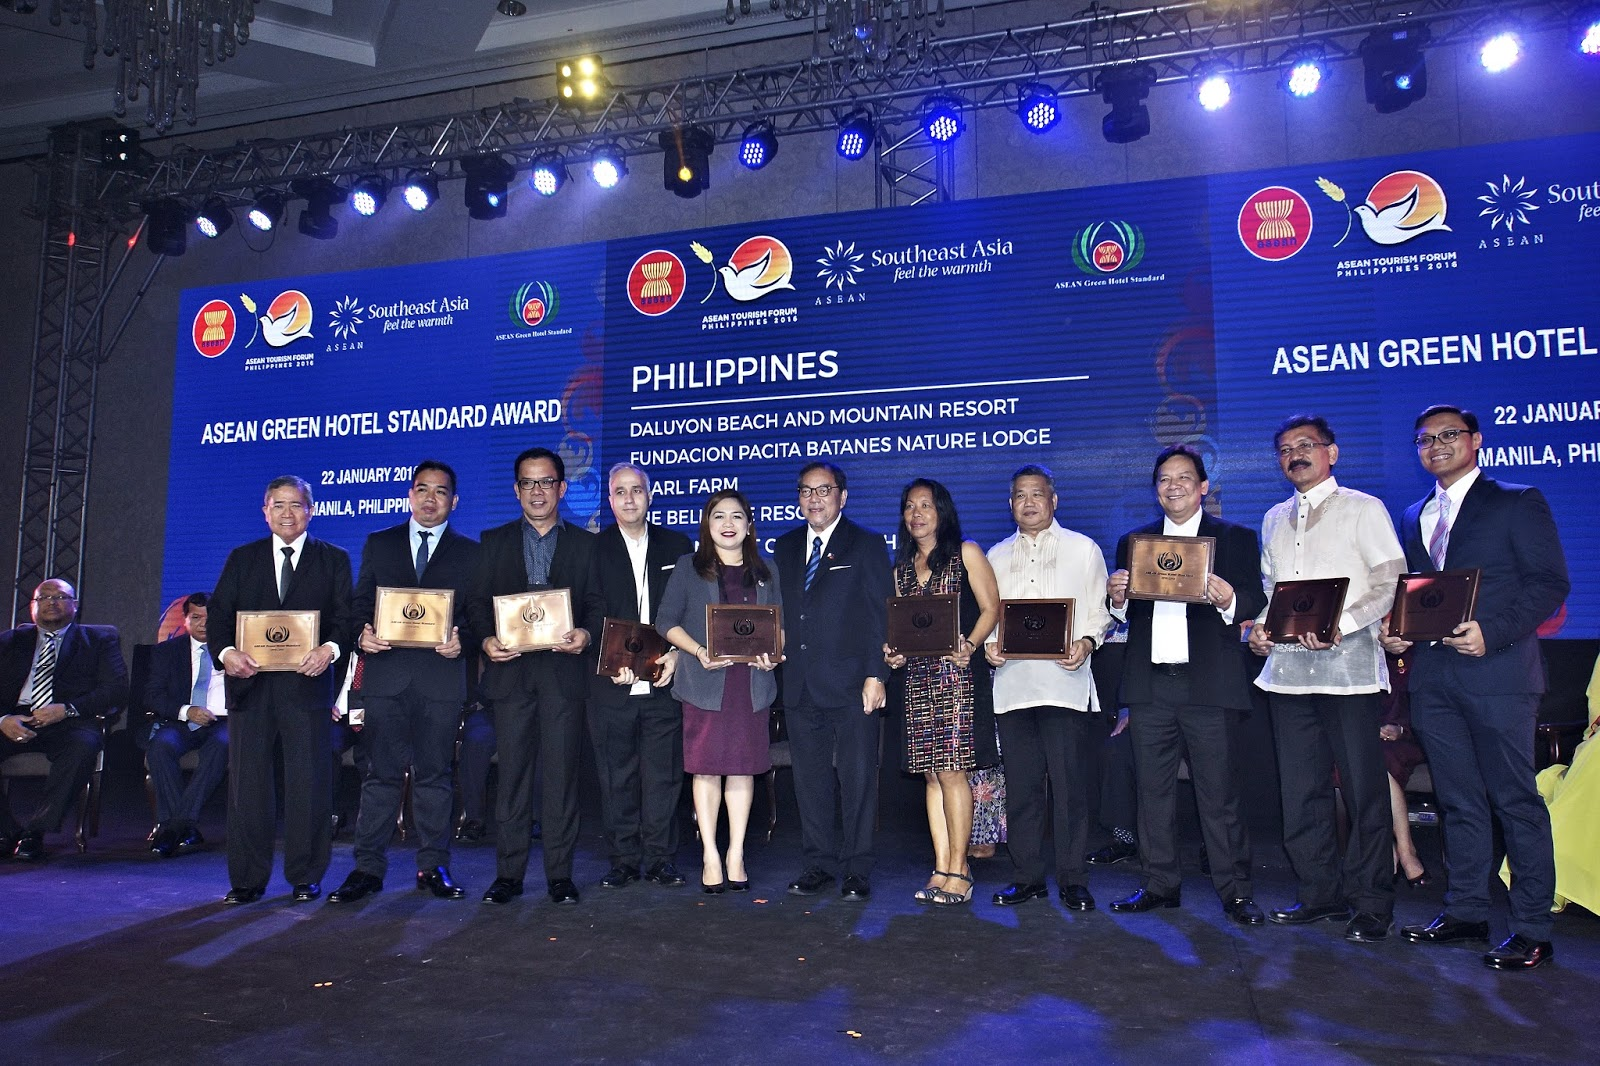 ASEAN-Green-Hotels-Awardees-Philippines